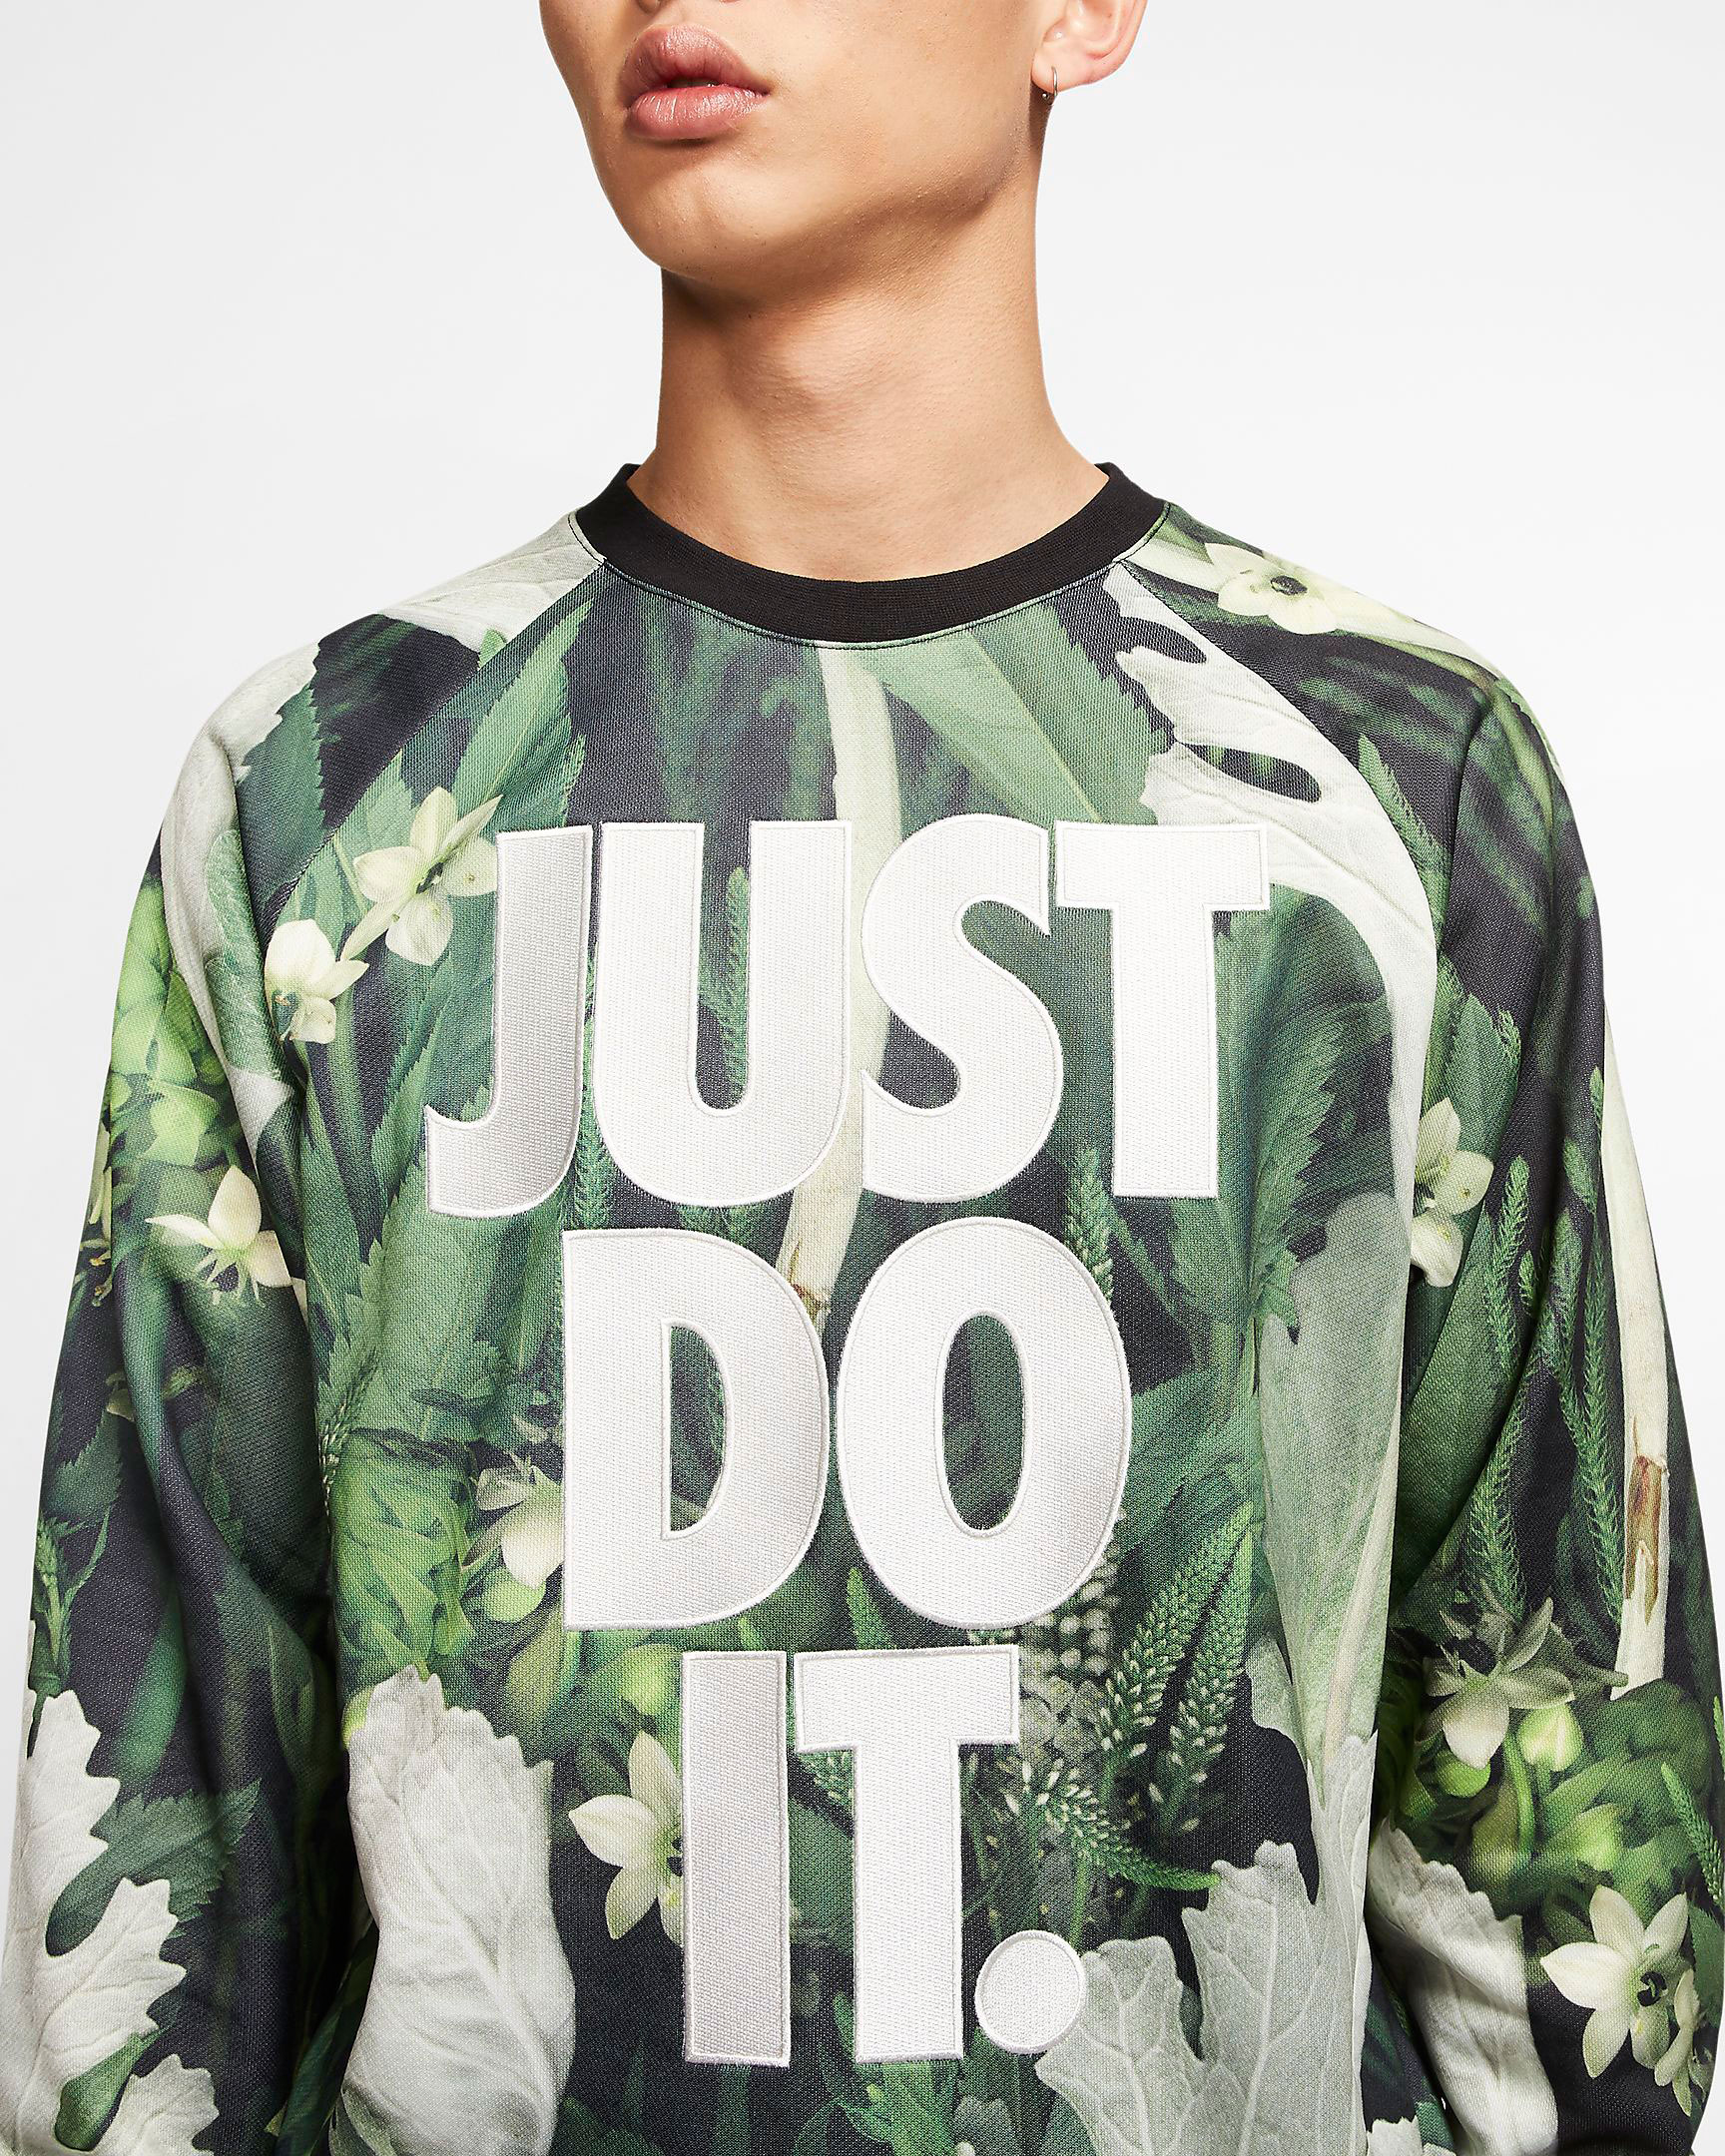 nike-just-do-it-floral-green-sweatshirt-1